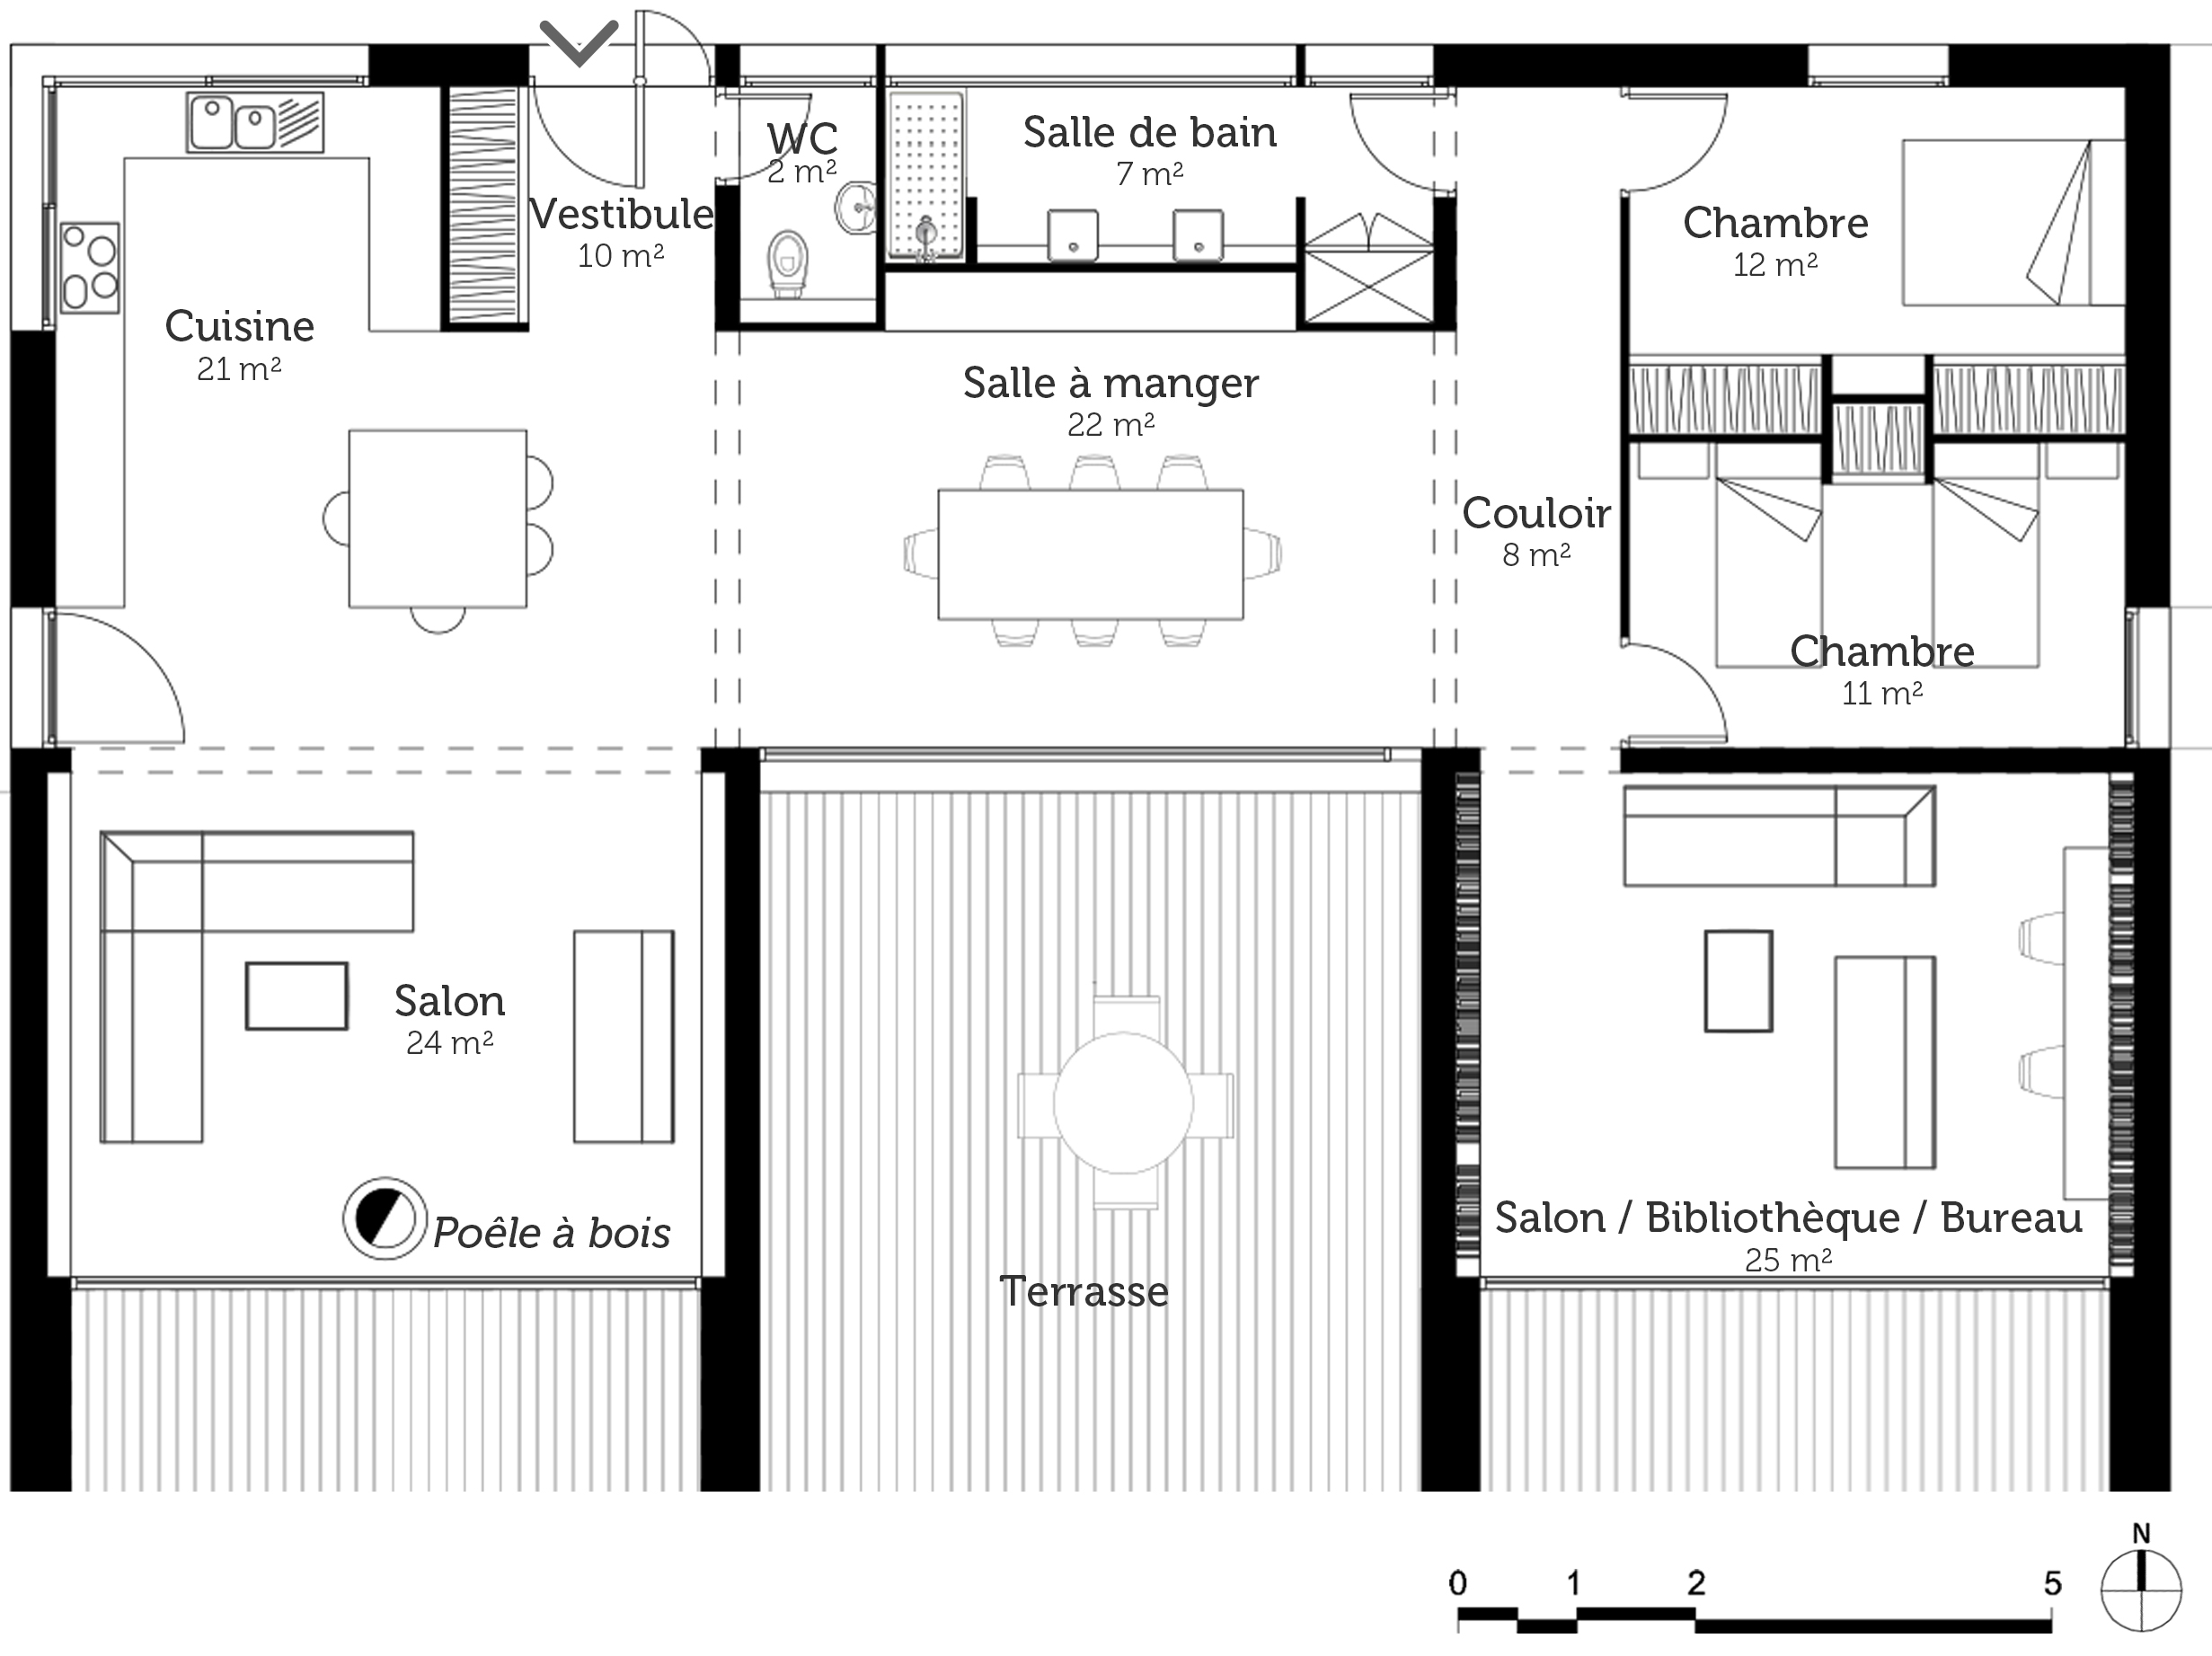 Image Result For Plan Maison En L  Chambres